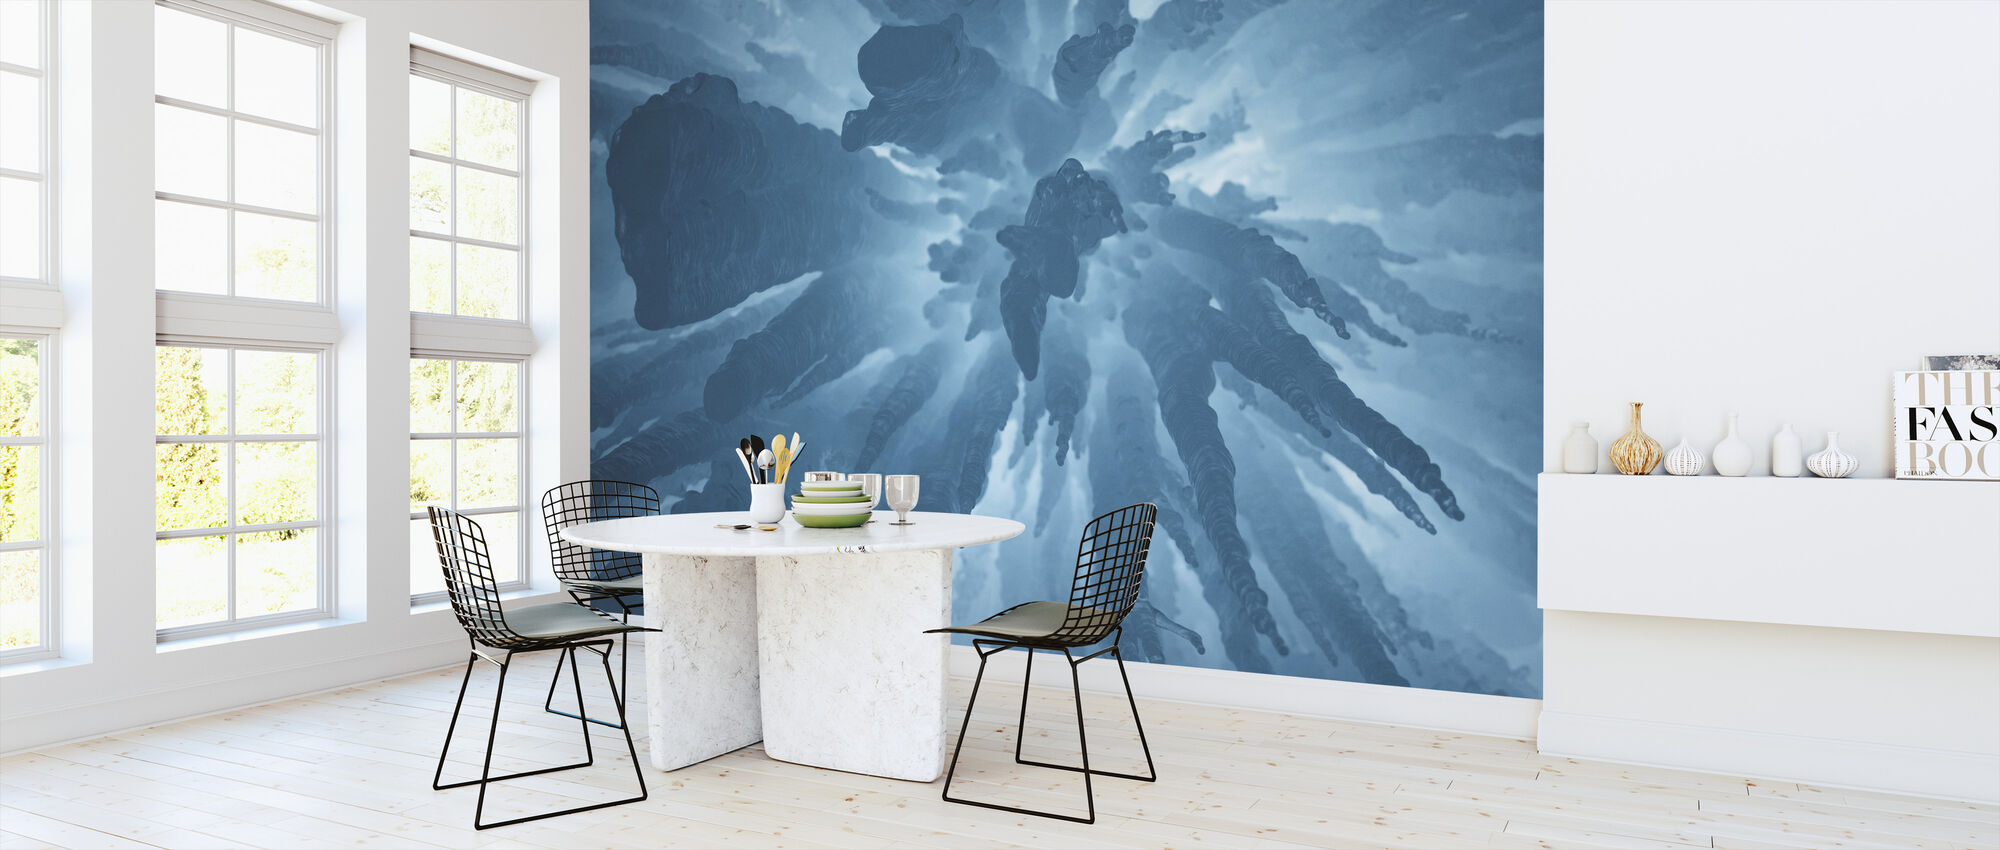 Ice Castles - Wallpaper - Kitchen